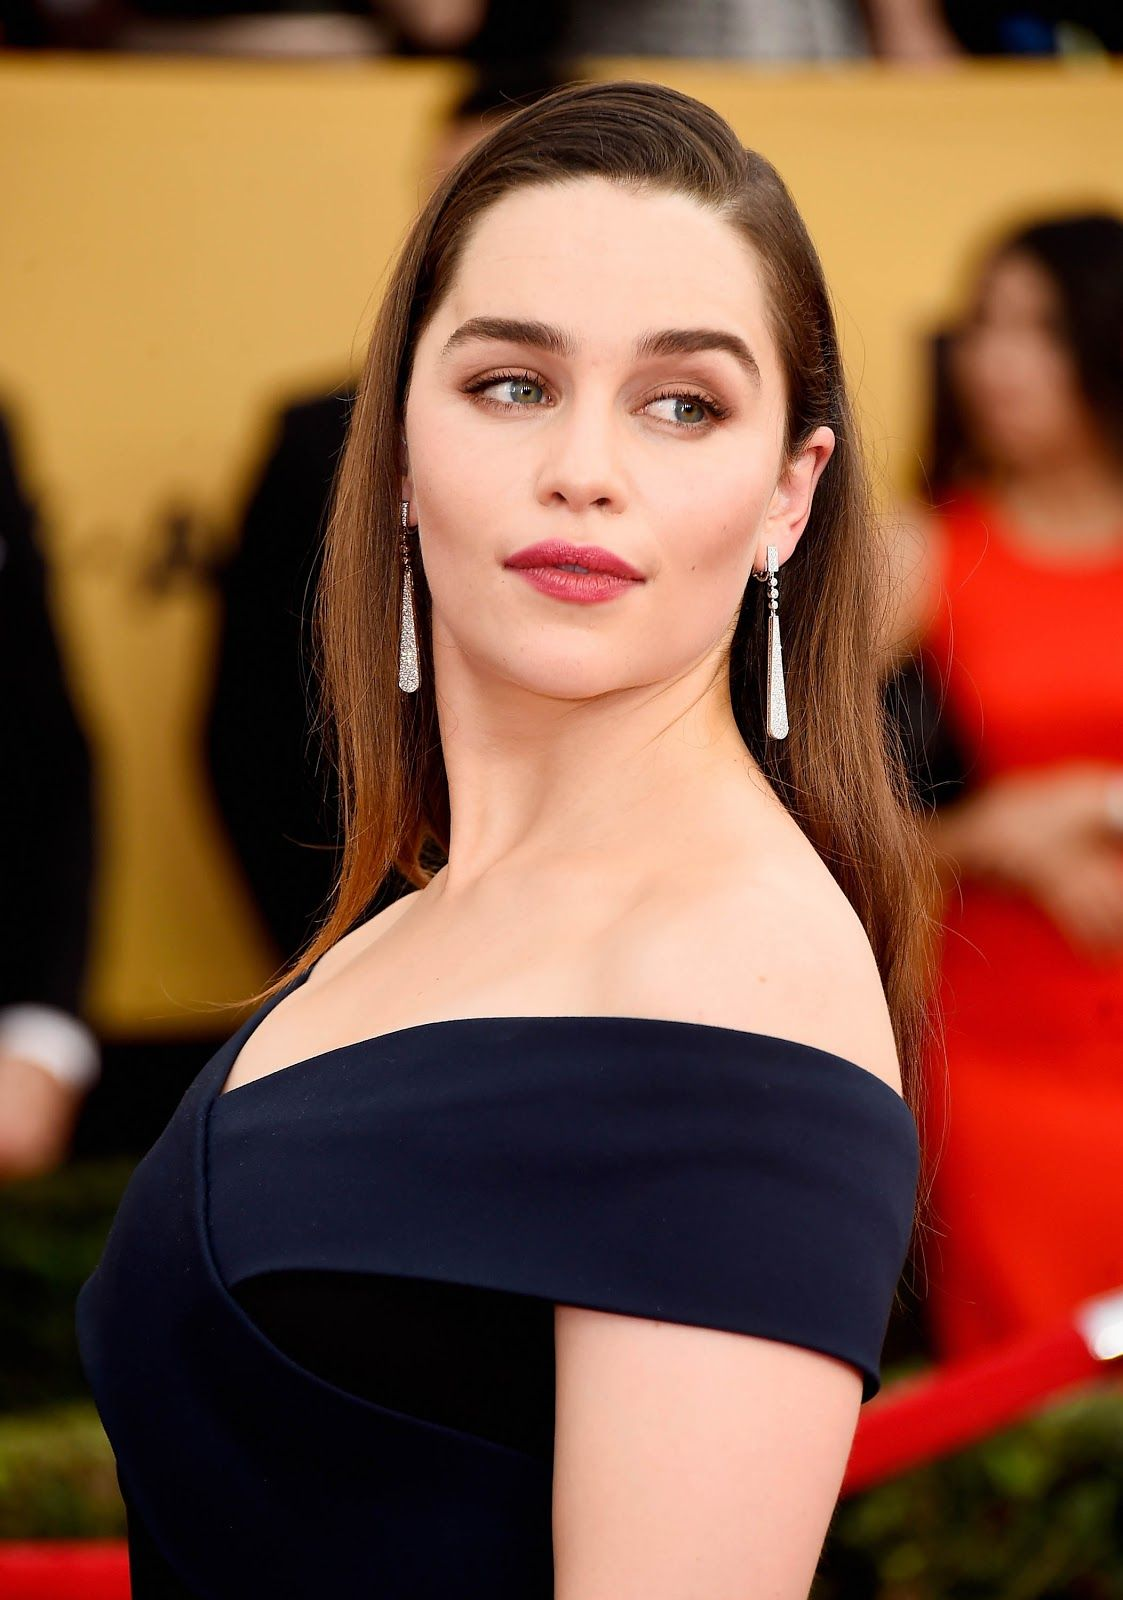 Terminator Genisys Actress Emilia Clarke Full HD Images and 1123x1600